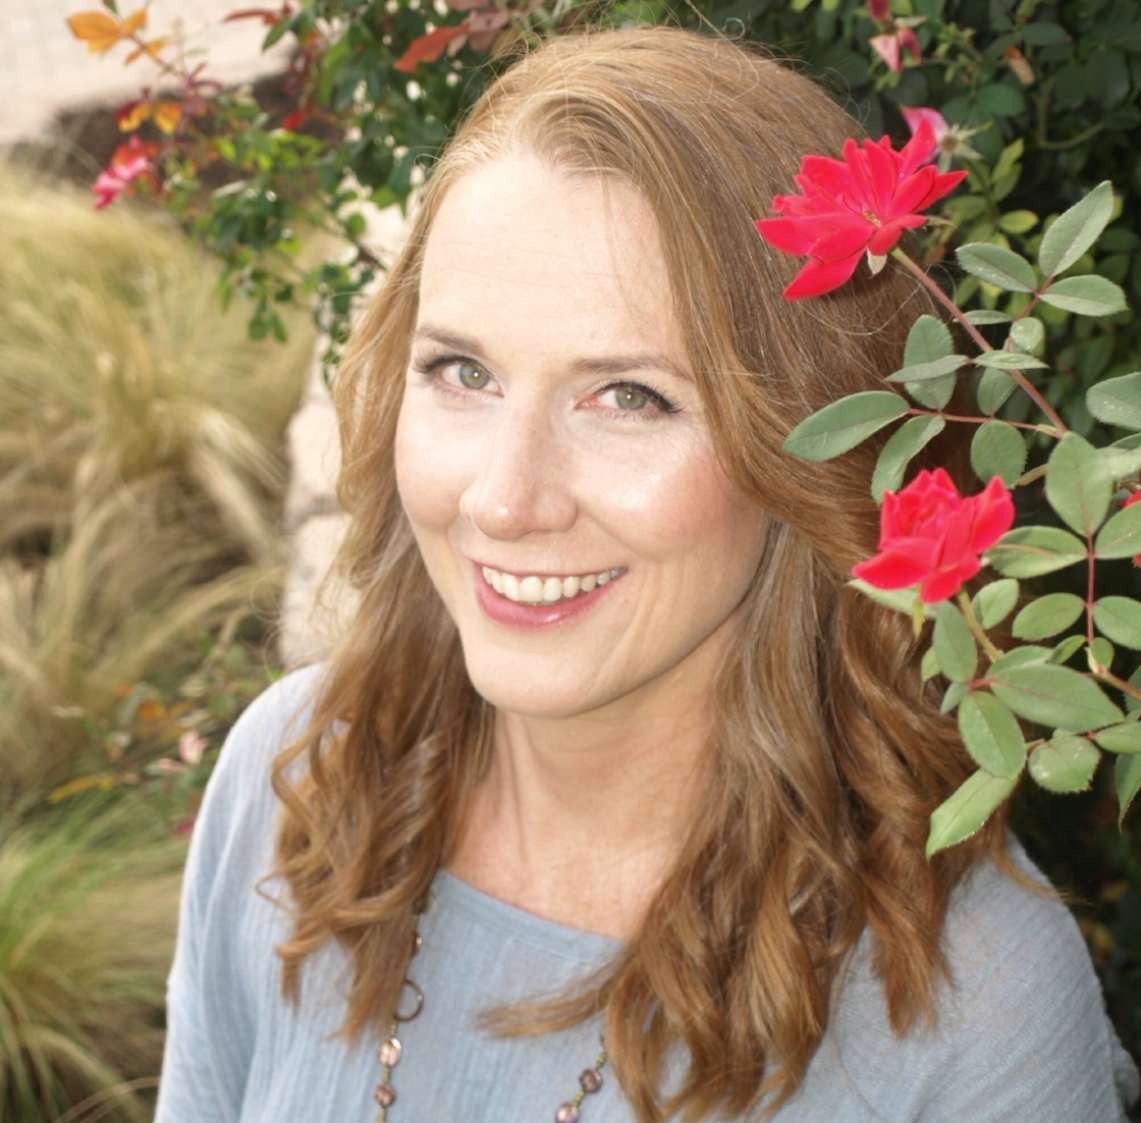 Laura Wall, Nourishment Coach & Presenter    Laura Wall's  journey to wellness began with dance fitness and continued as she became a certified strength trainer and nutrition coach. Most recently, she has been developing her yoga practice with devoted time for discovering about the chakras, vibrational energy and the Laws of the Universe. She recently received her Intuitive Coaching Certification with the Feminine Wisdom Academy. Although she works with clients of all ages and genders, she prefers to engage with small circles of women tapping into their natural strengths of compassion, creative collaboration and mutual empowerment.   Website     Facebook     Instagram   Join Laura's Email List